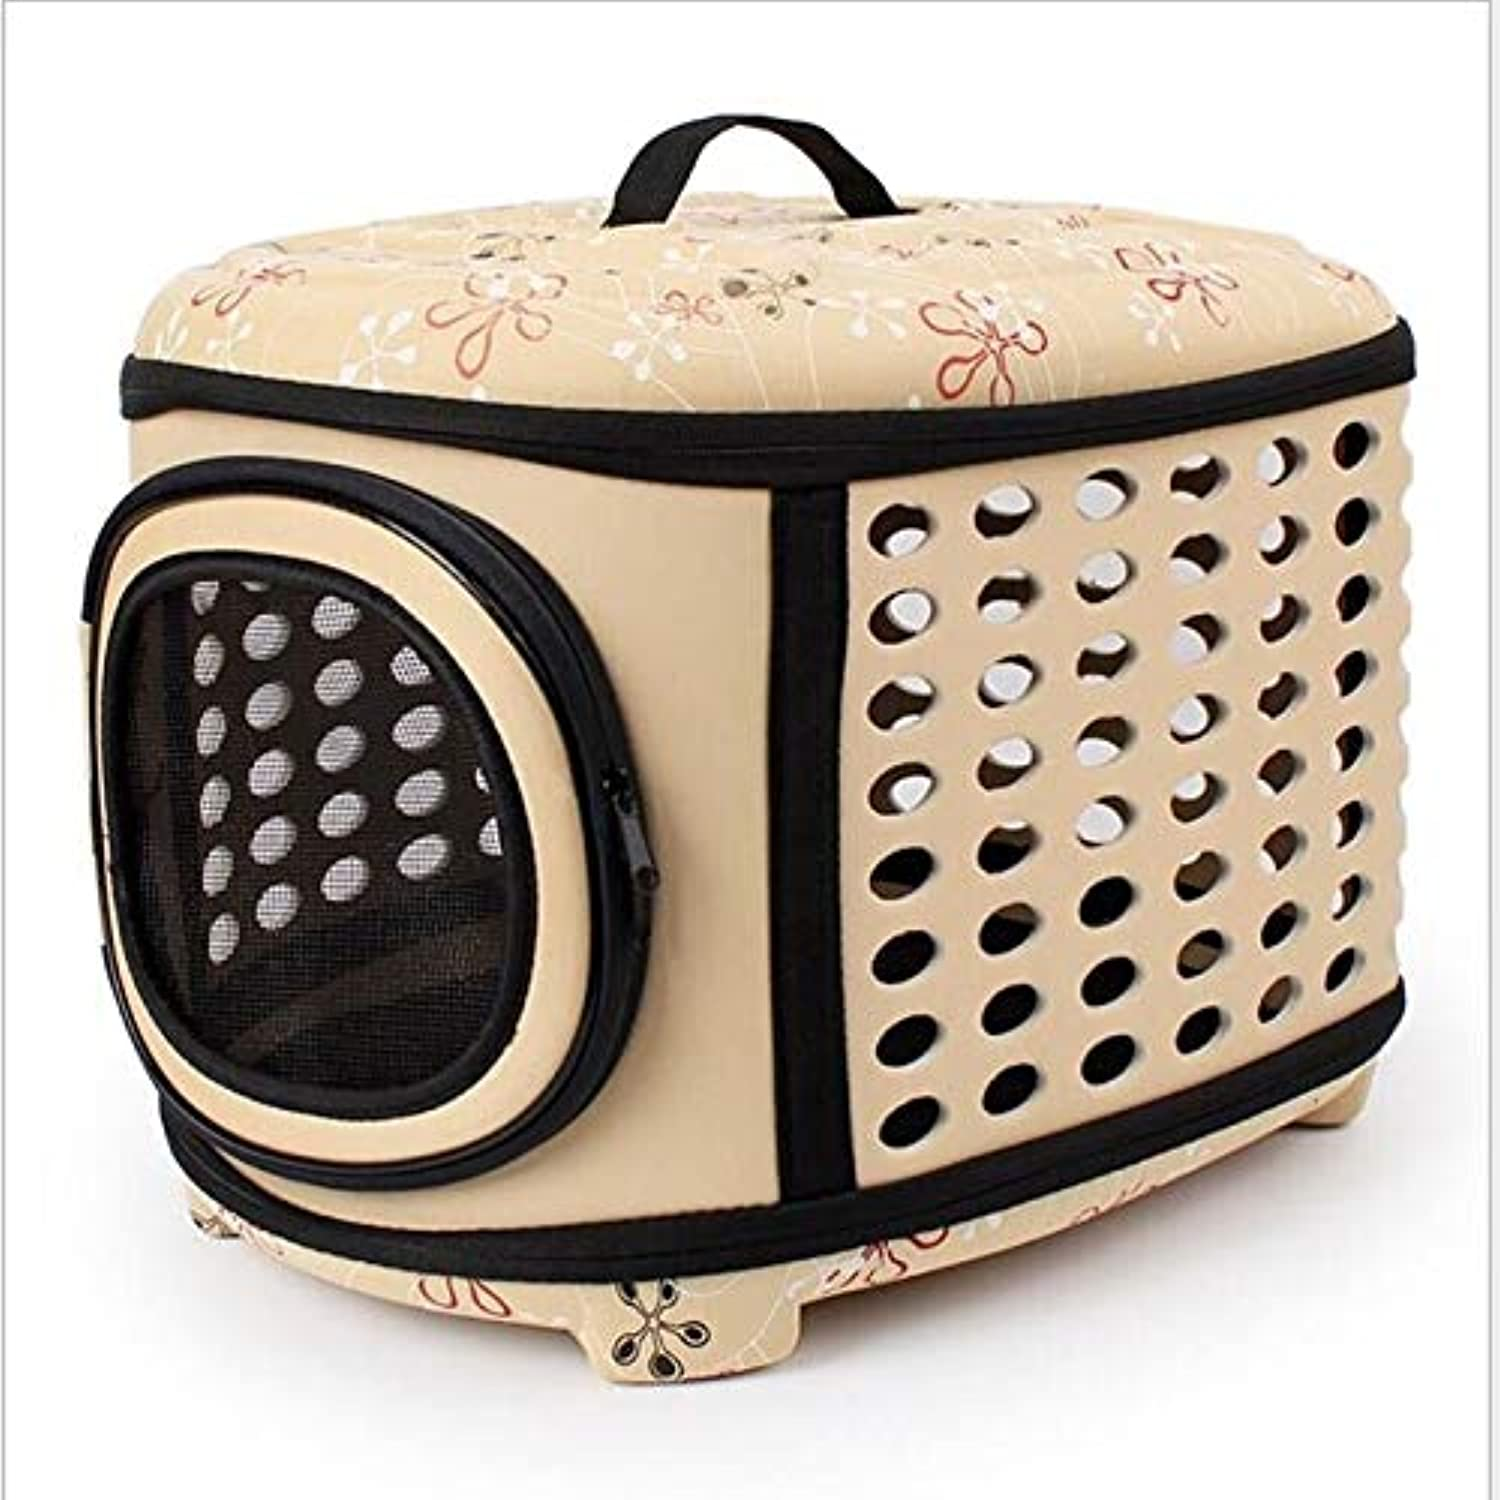 New,Pet Carrying Travel,Bag Cat Dog,Backpack Portable Front, Bag Mesh Back,Small Pet QualityPuppy Cat SmallLoad Pet KennelCat CageLightweight Pet KennelPortable Pop